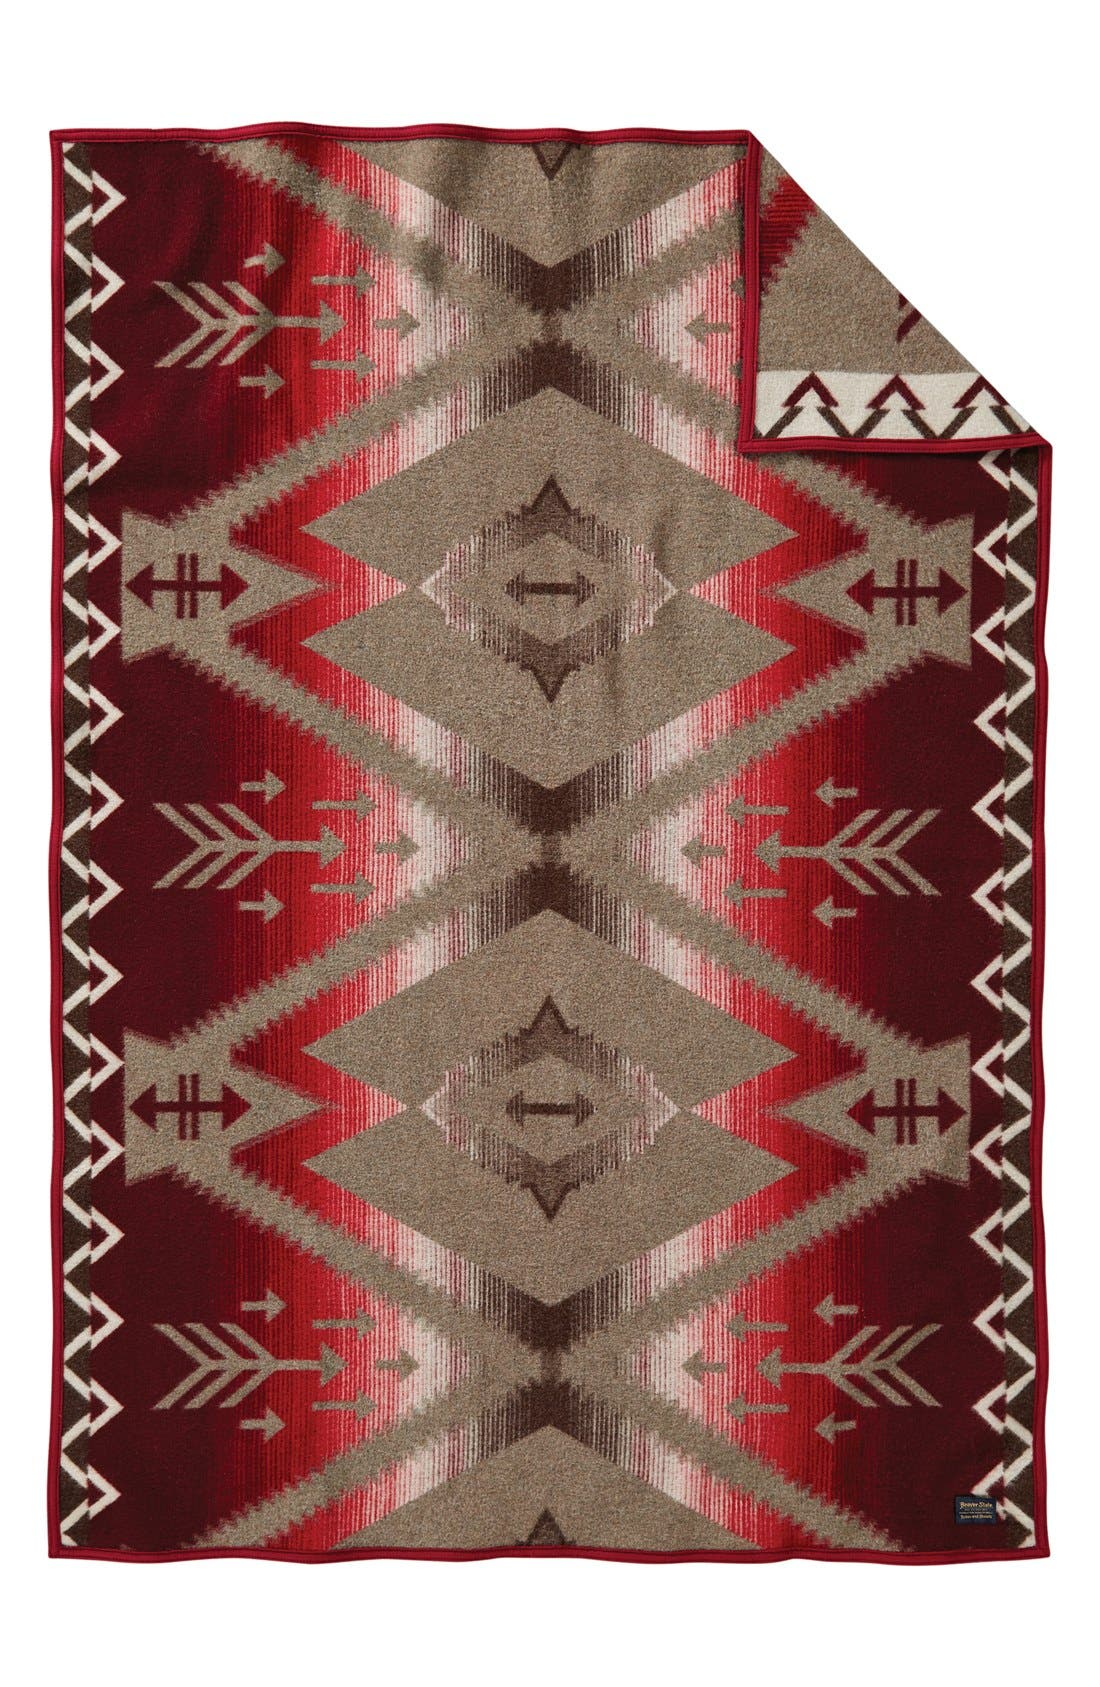 Atsila Jacquard Throw,                             Main thumbnail 1, color,                             Atsila